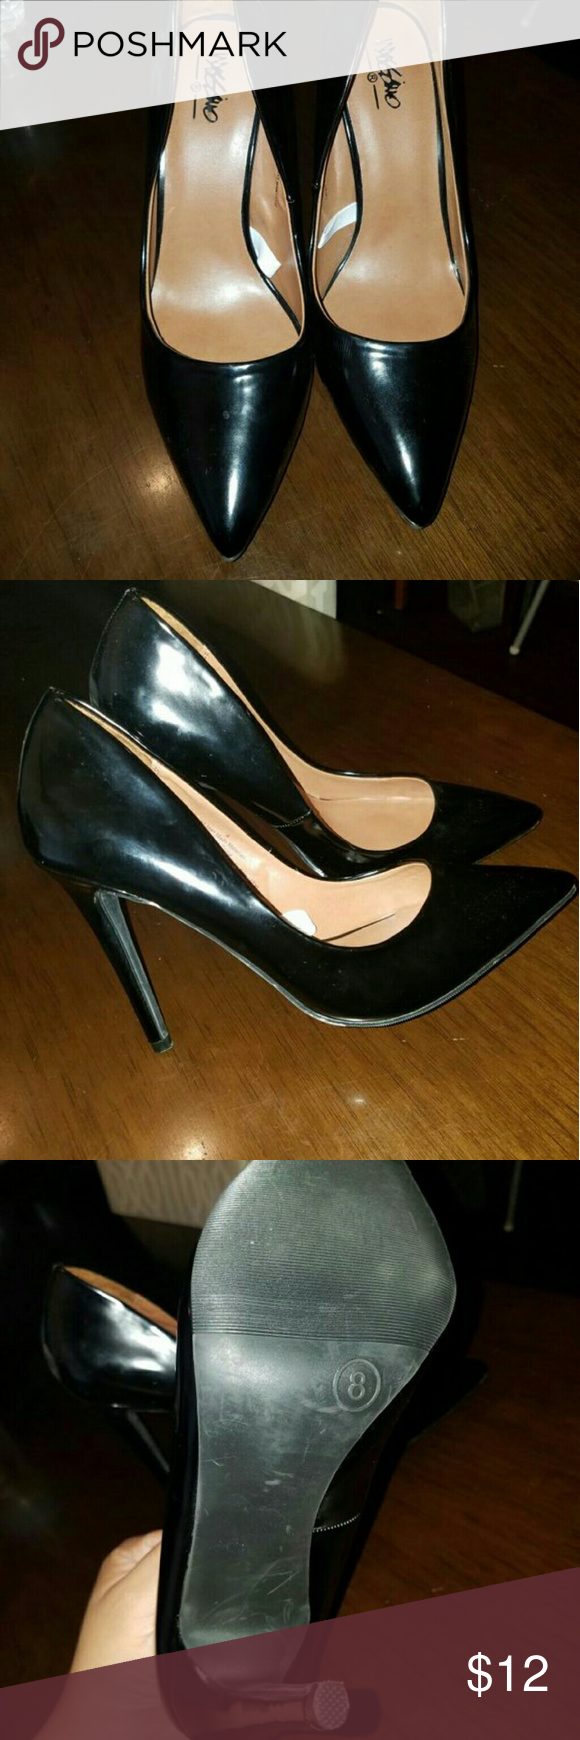 Mossimo heels Black sexy pointy heels. Great condition. Mossimo Supply Co Shoes Heels